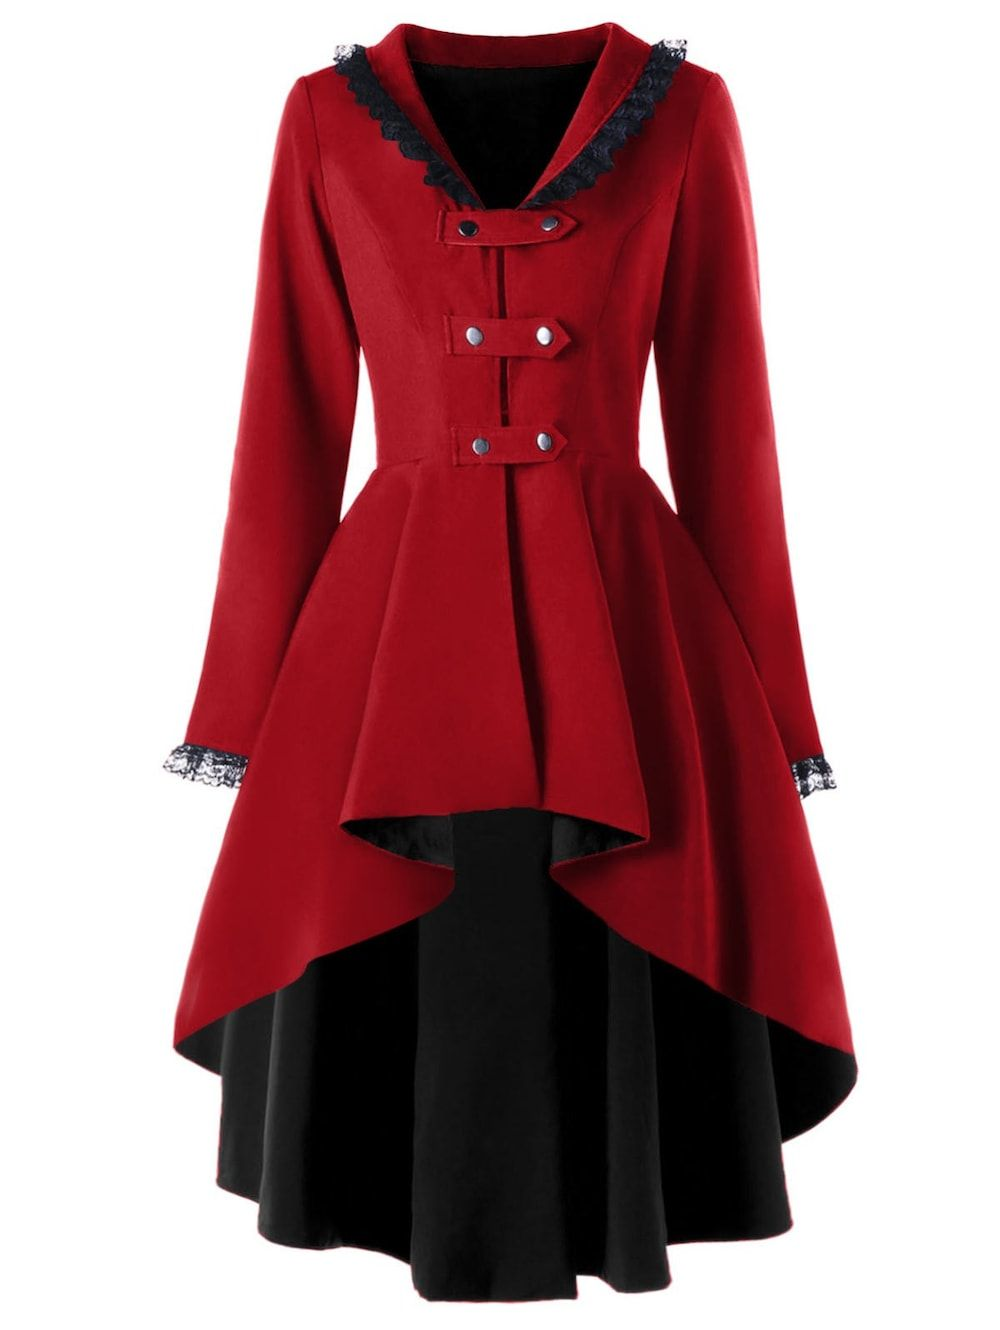 7c761be251493 Competitive Wine Red L Coats online